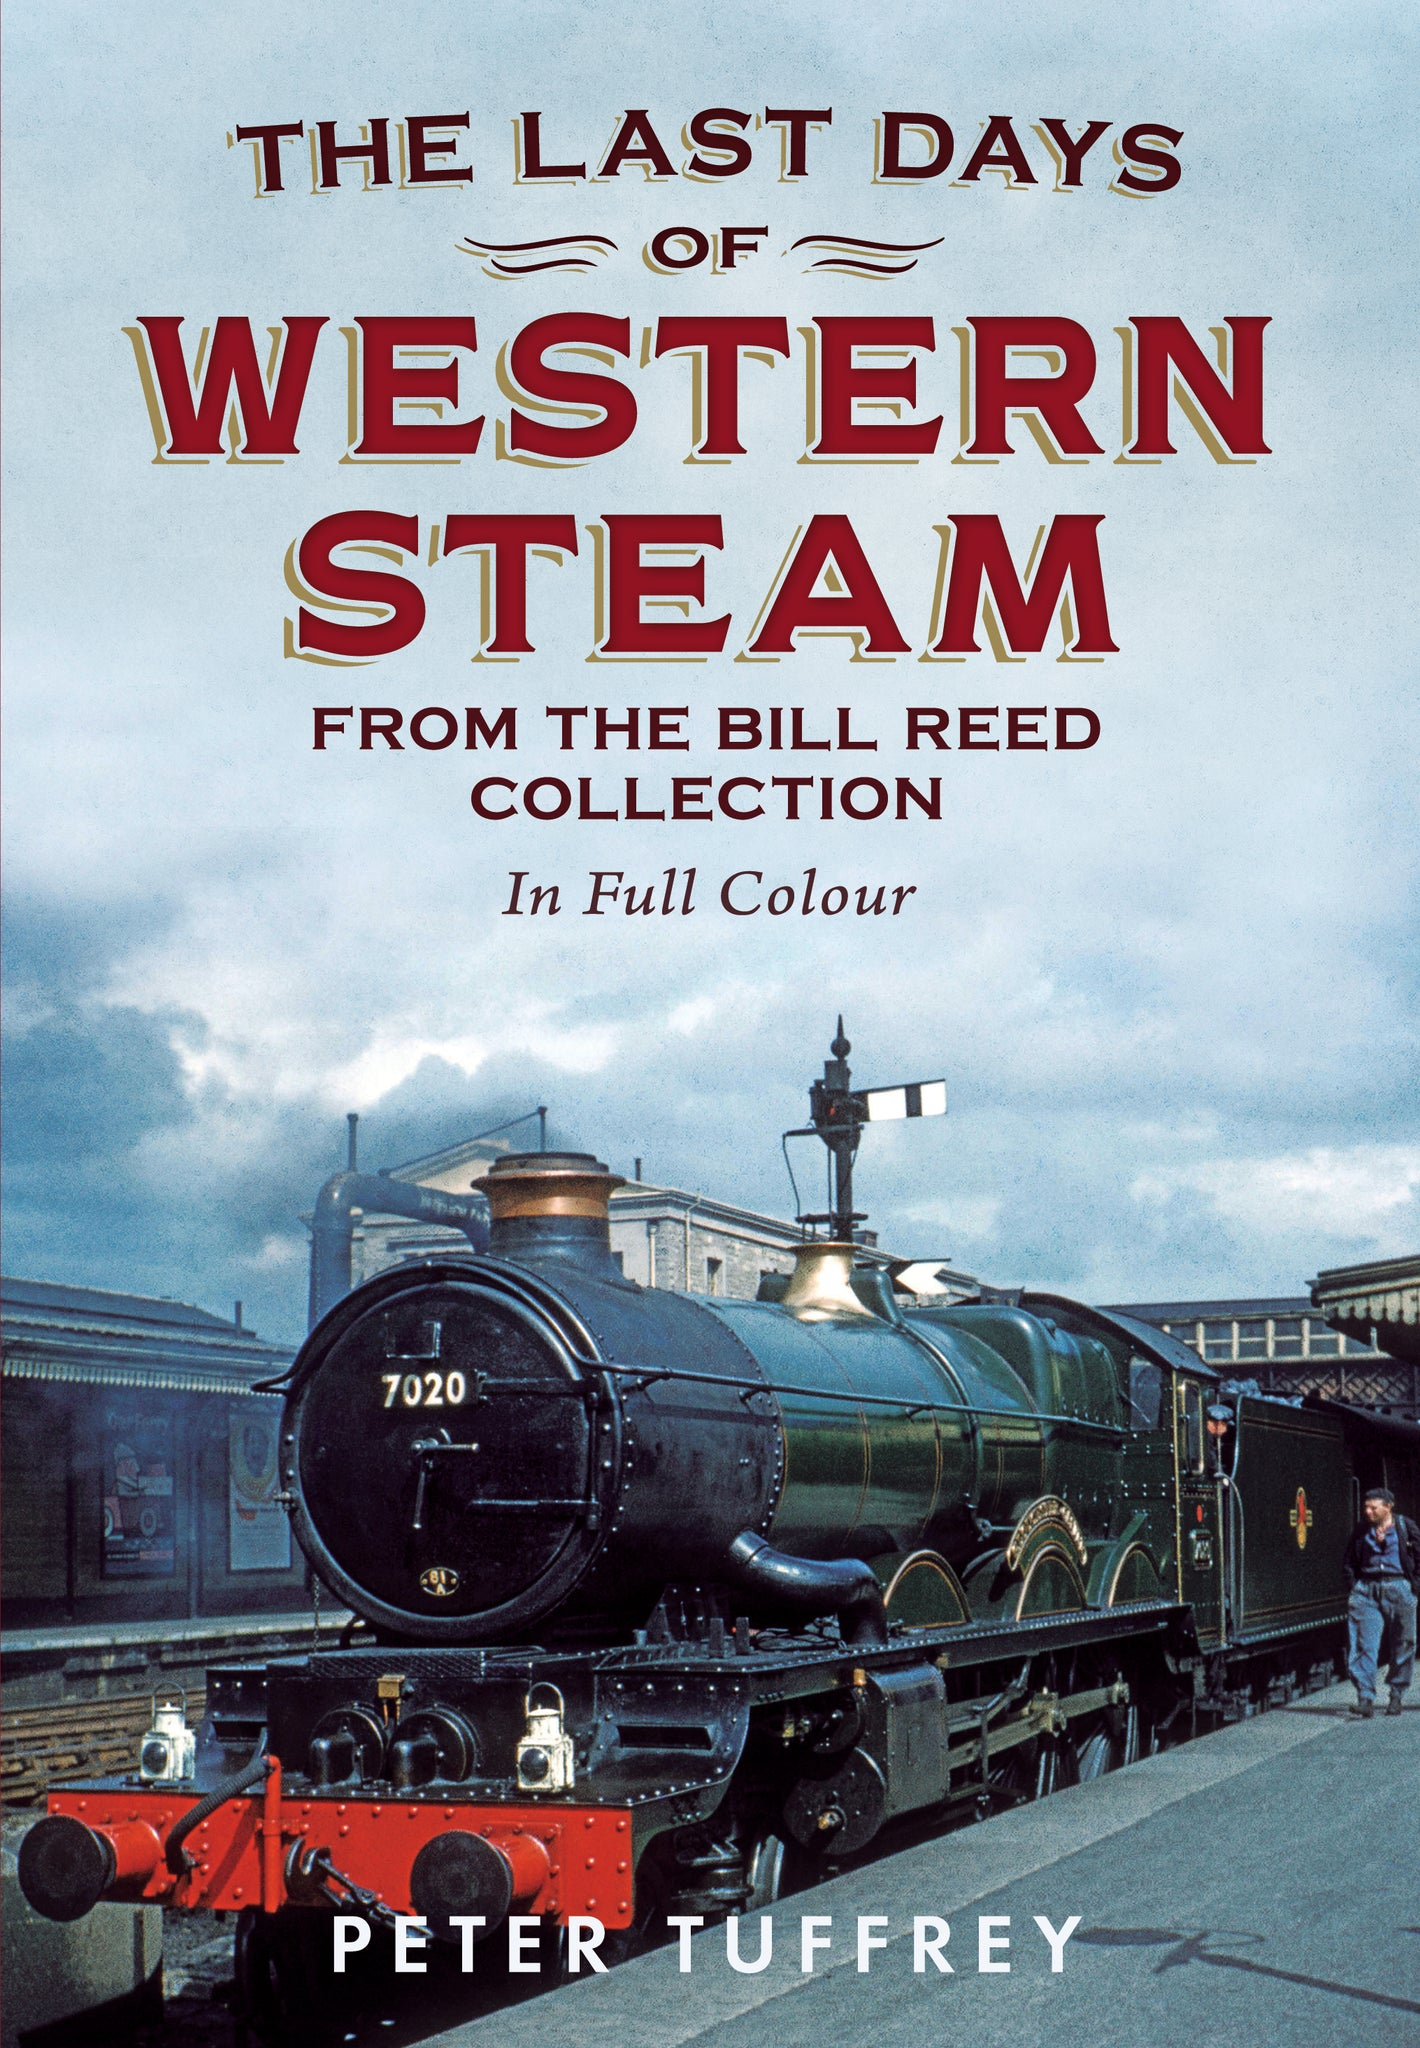 The Last Days of Western Steam From the Bill Reed Collection (In Full Colour)